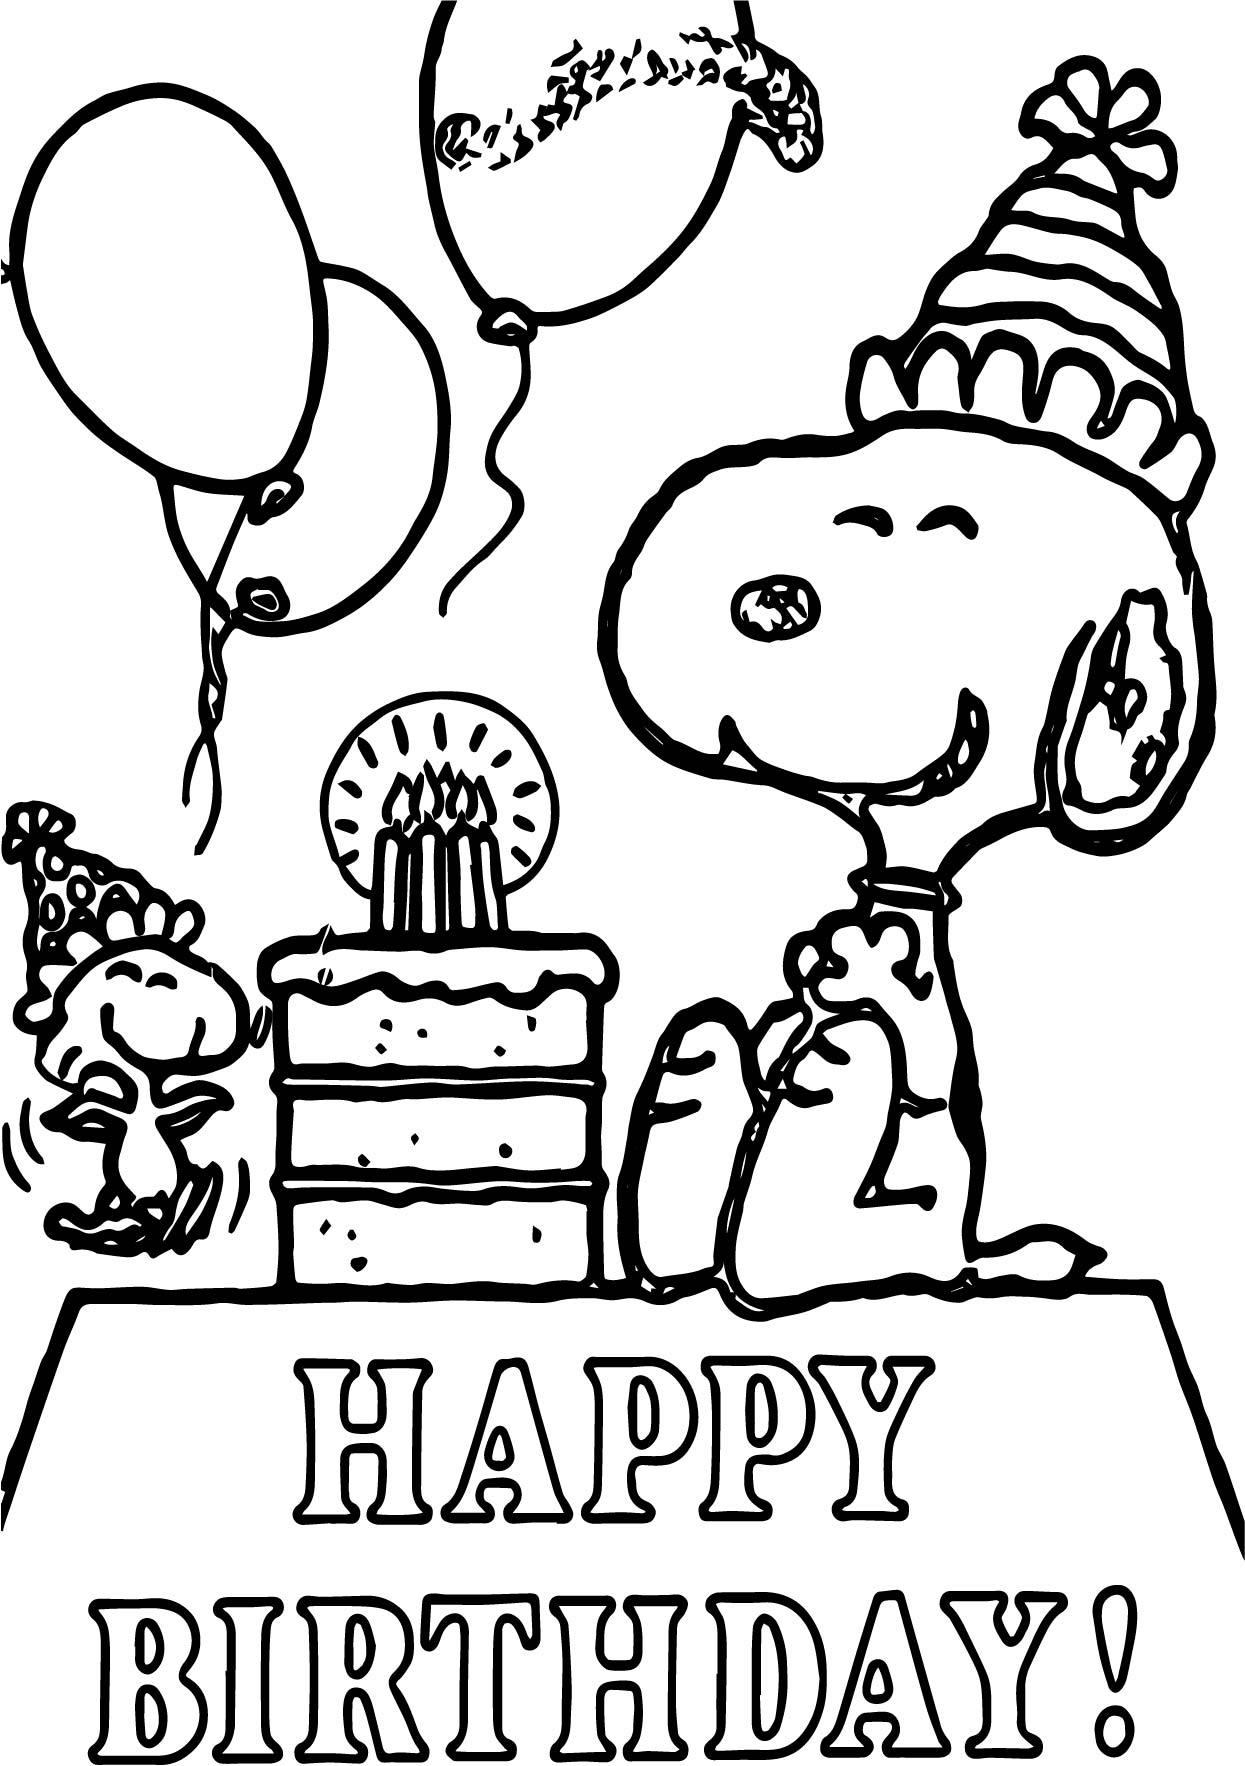 Snoopy Happy Birthday Quote Coloring Page Wecoloringpage Com